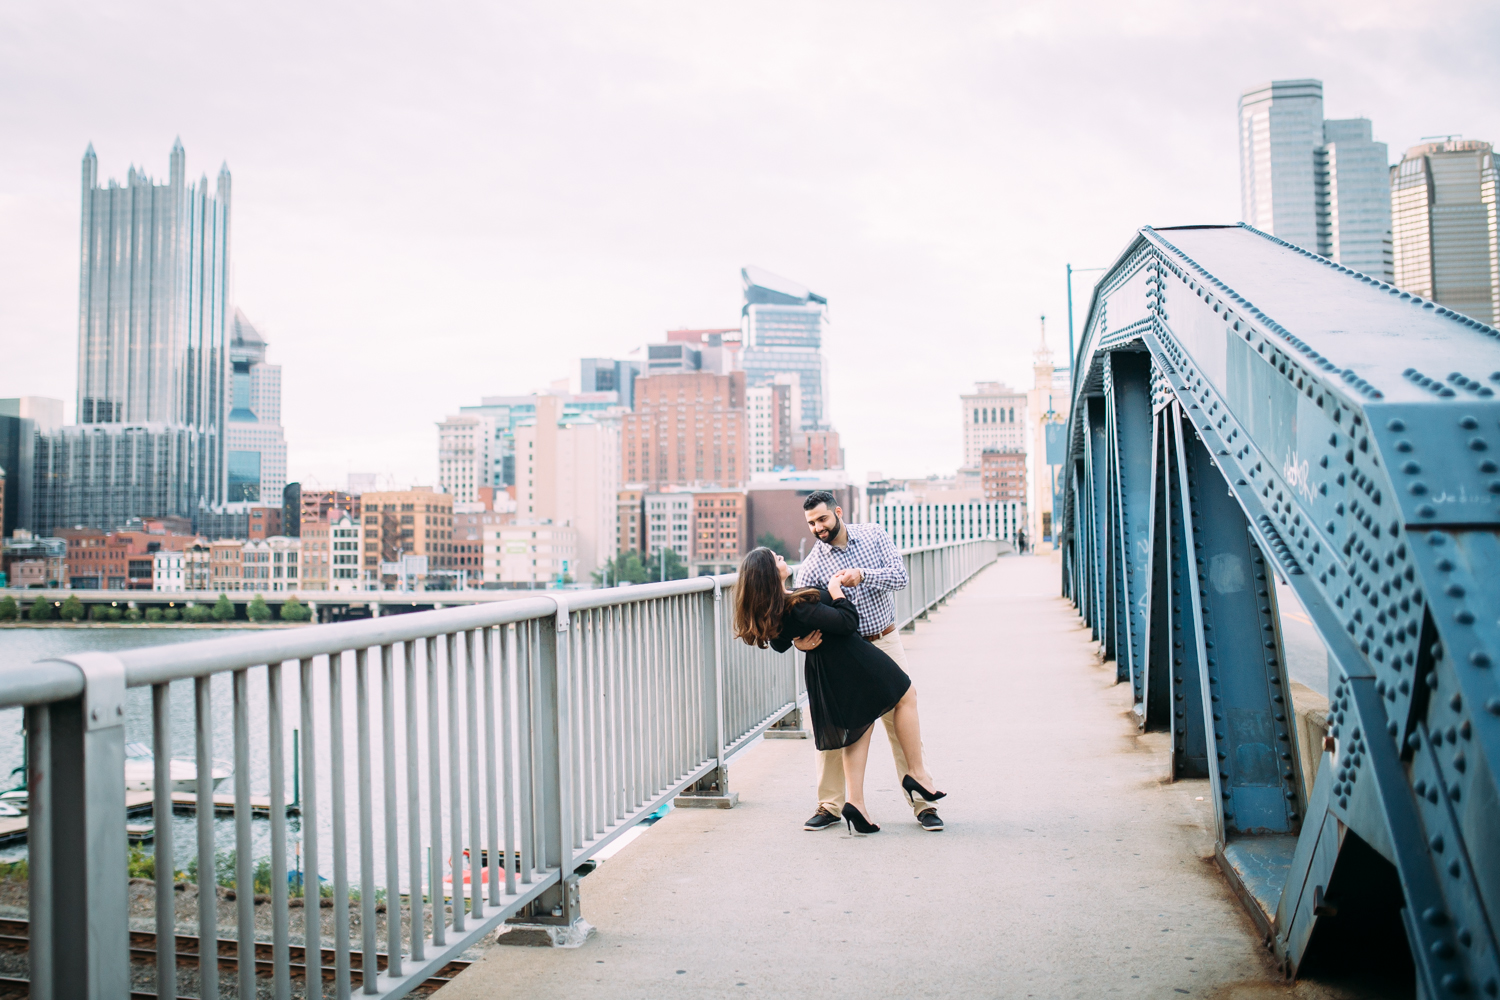 Ashley-reed-photography-pittsburgh-engagement-engagementphotography-engagementphotographer-stationsquare-statio-square-pittsburghengagementphotography-26.jpg